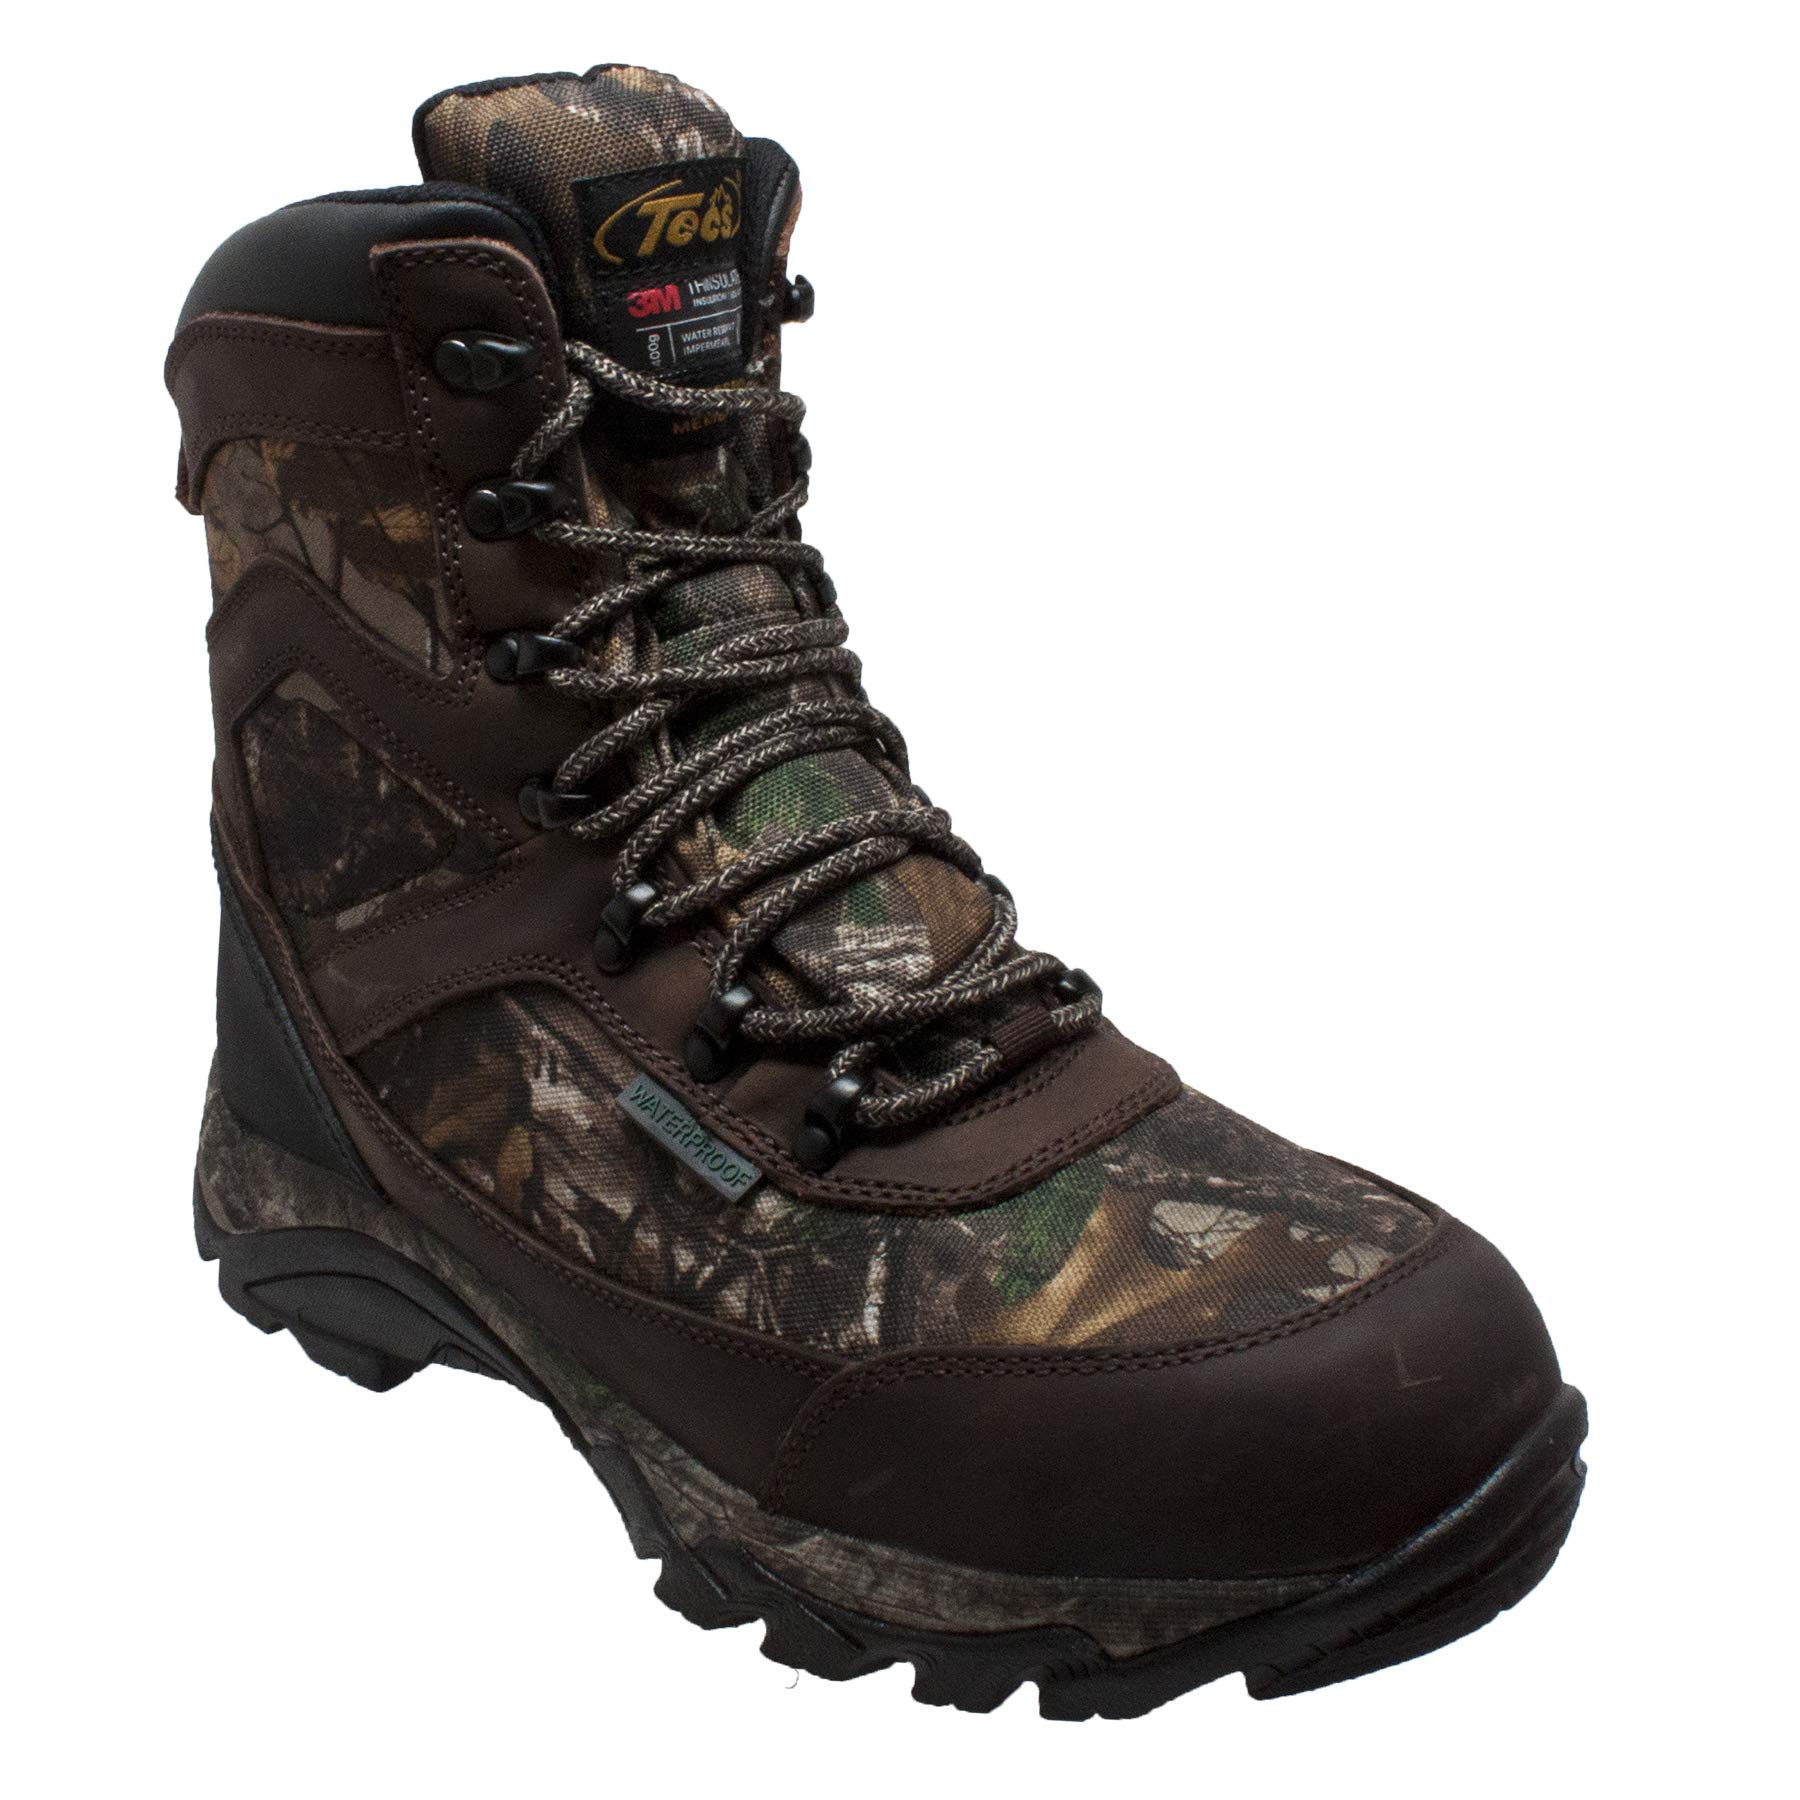 TECS Men's 9'' Leather Boots: Waterproof for Hunting, Fishing, Hiking or Outdoors 400g, Camo, 10.5 M US by TECS